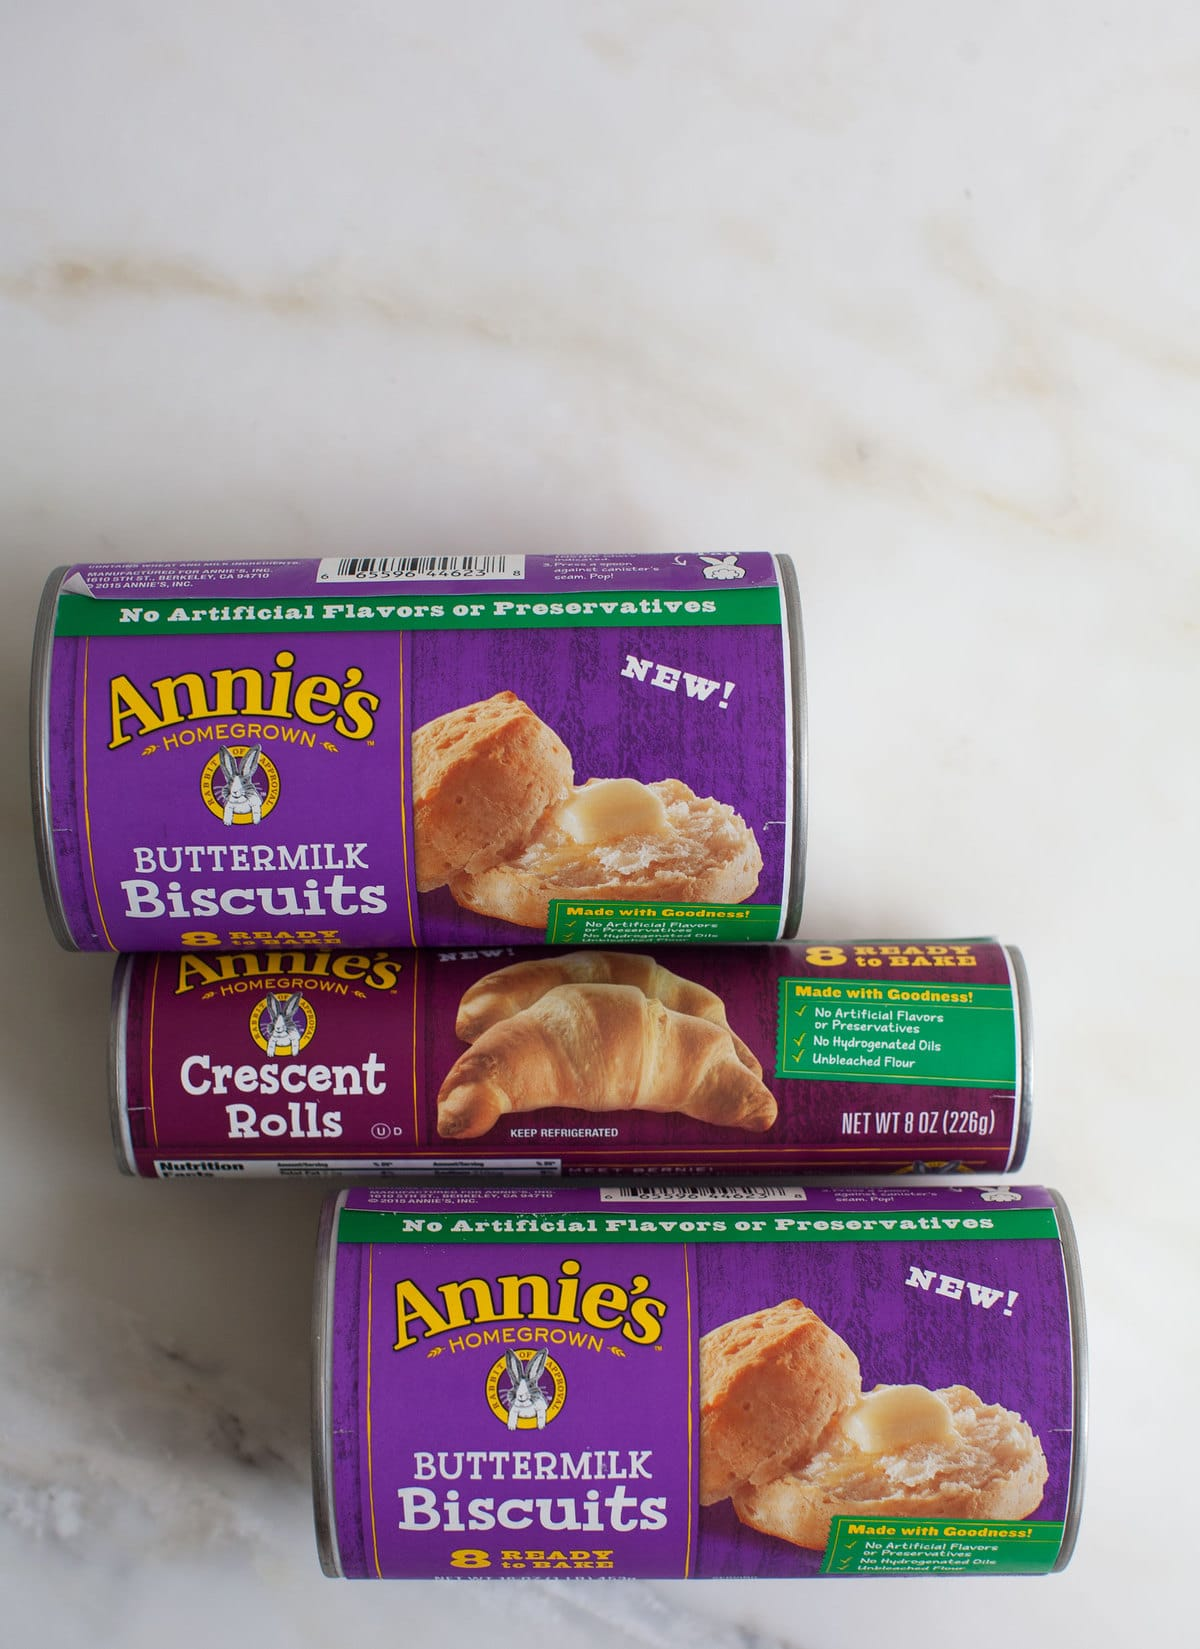 Annie's Buttermilk Biscuits and Crescent Rolls